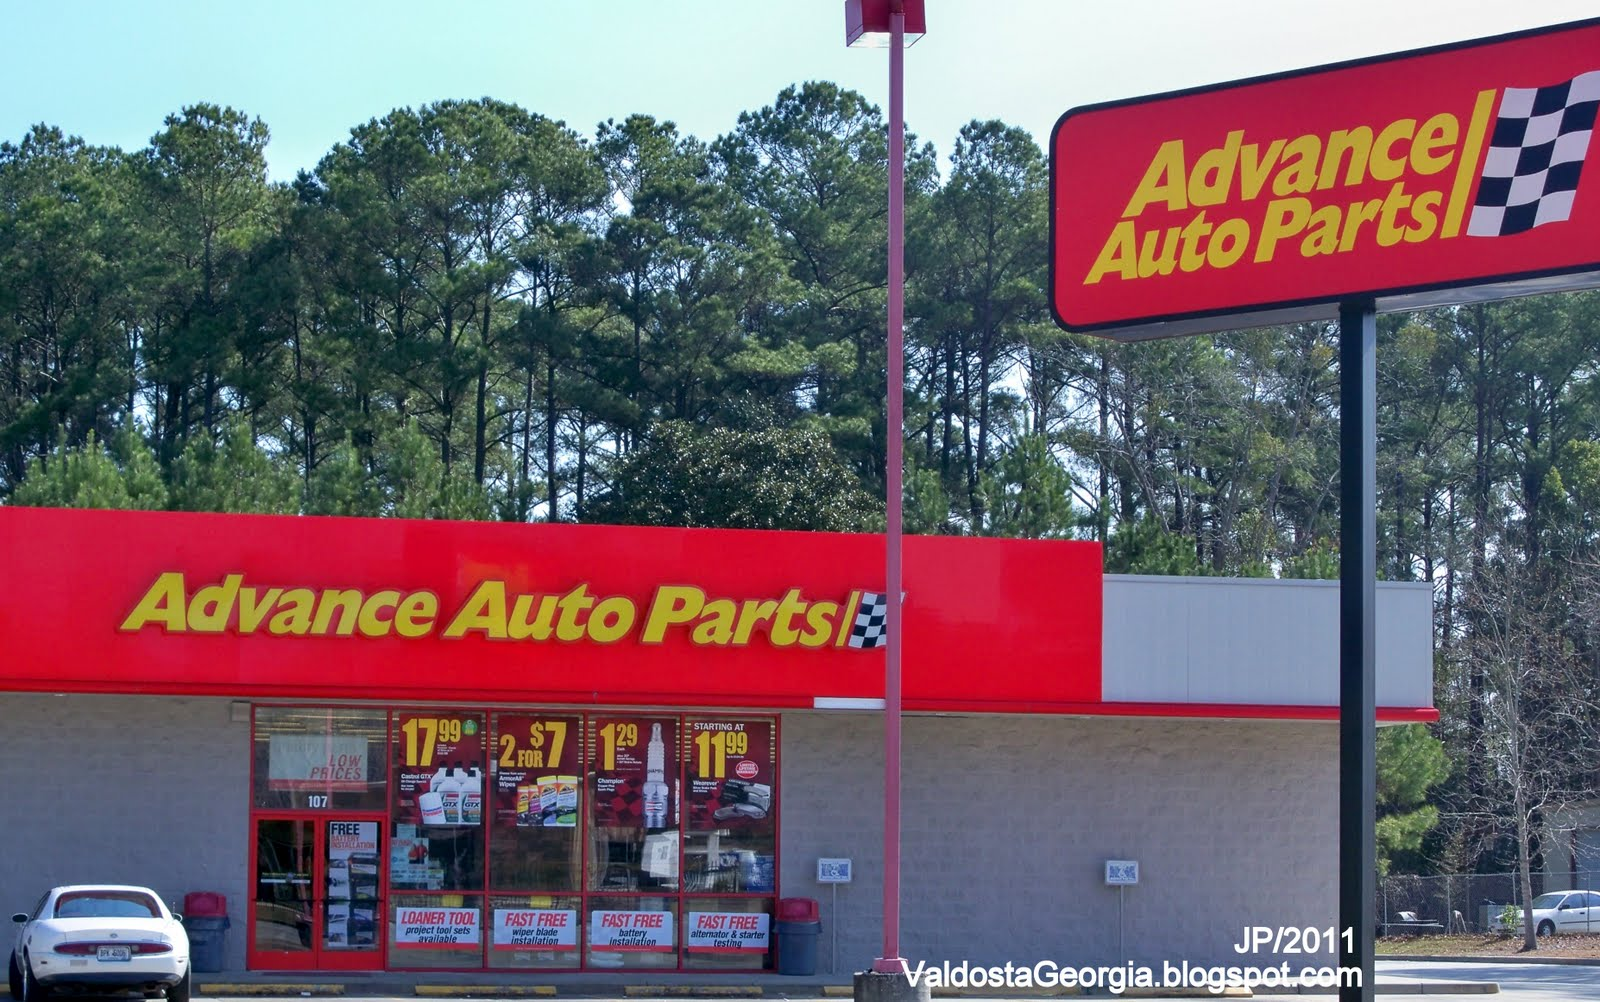 Palm Beach Toyota Coupons Advance Auto Parts Closing A Cape Girardeau History And Photos ...